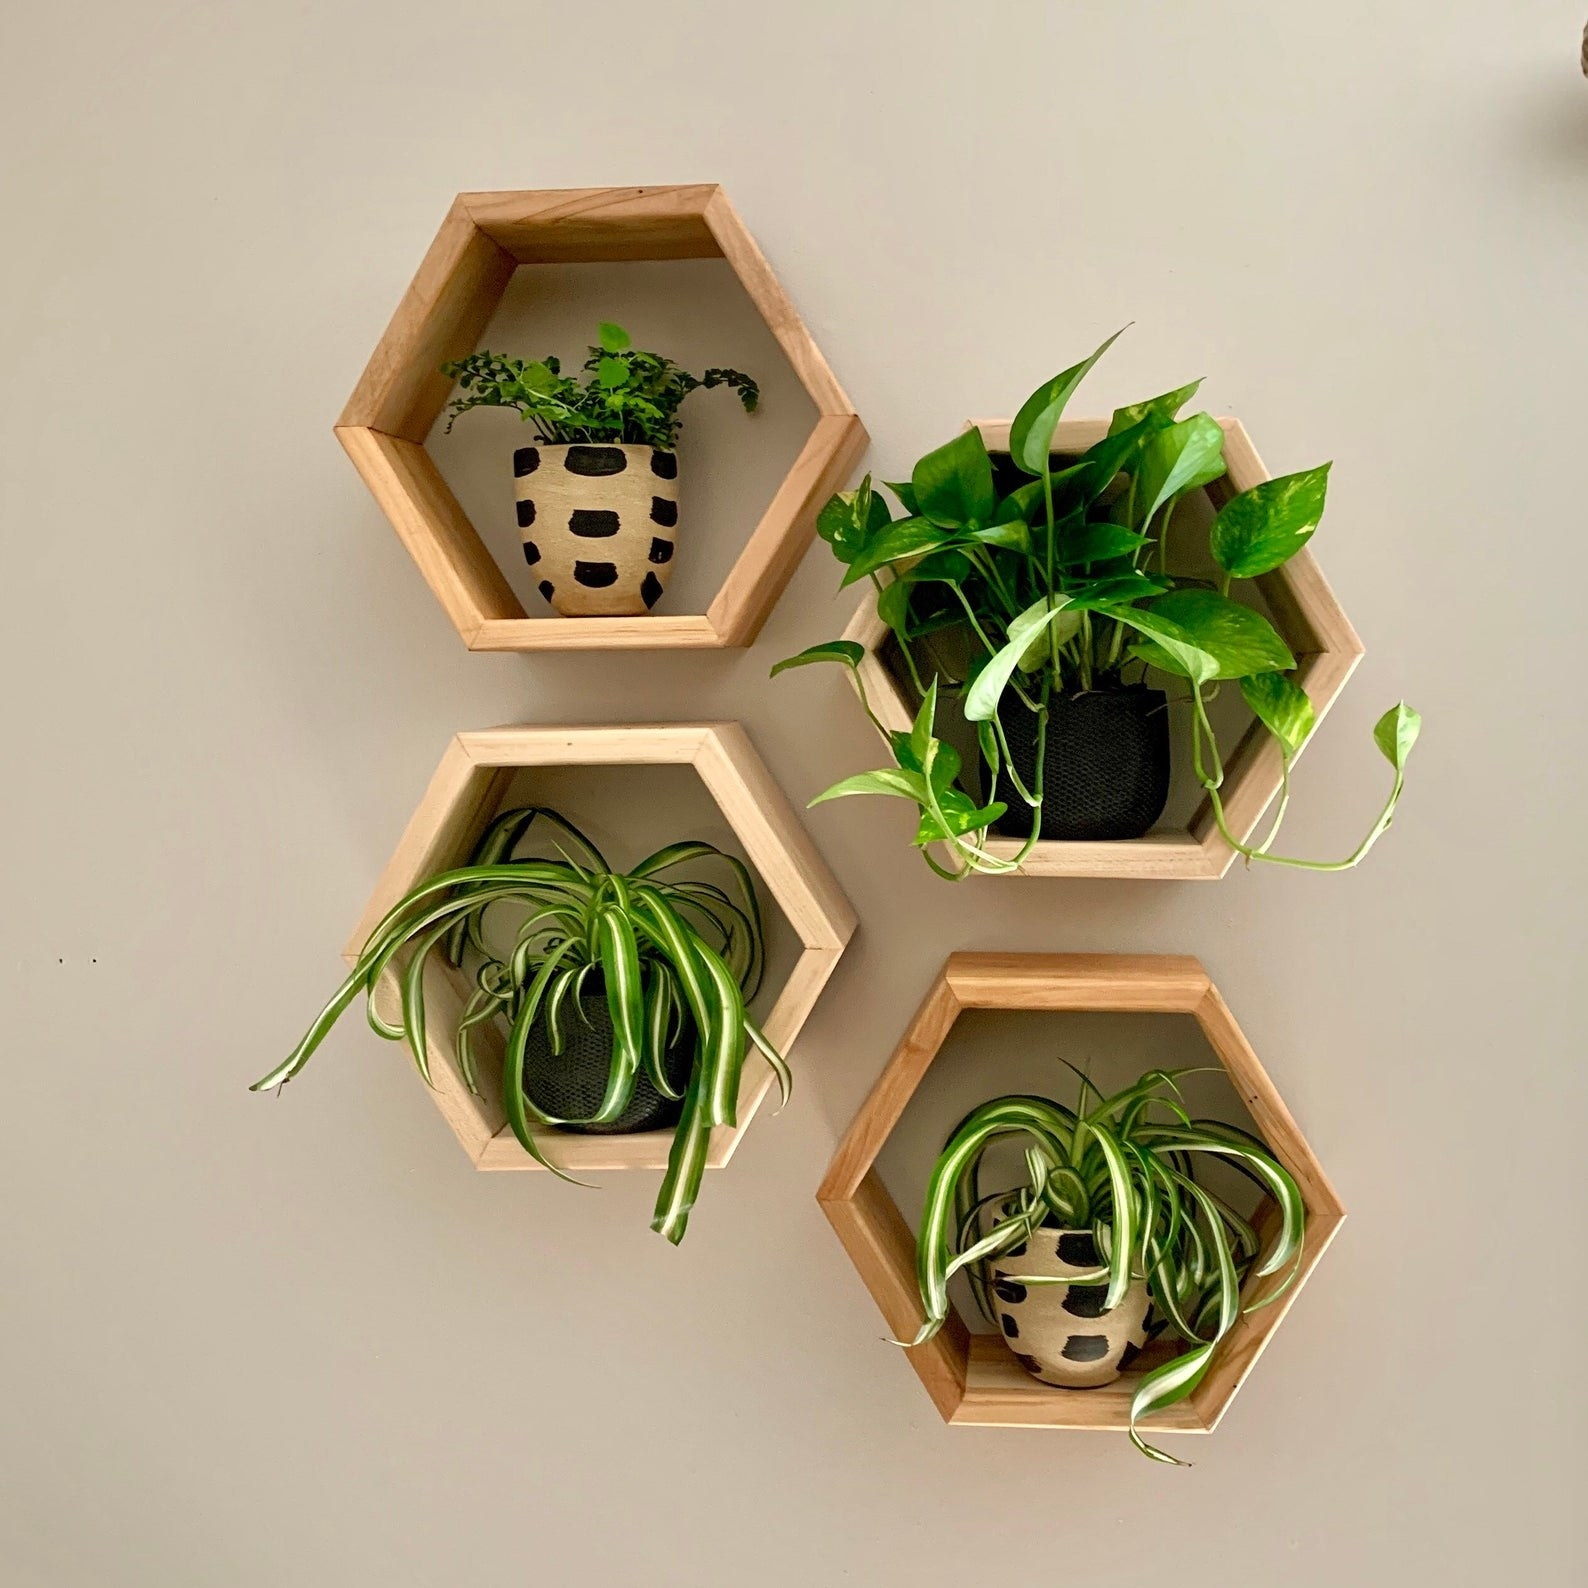 Hexagonal shaped wall frames with small potted plants on them